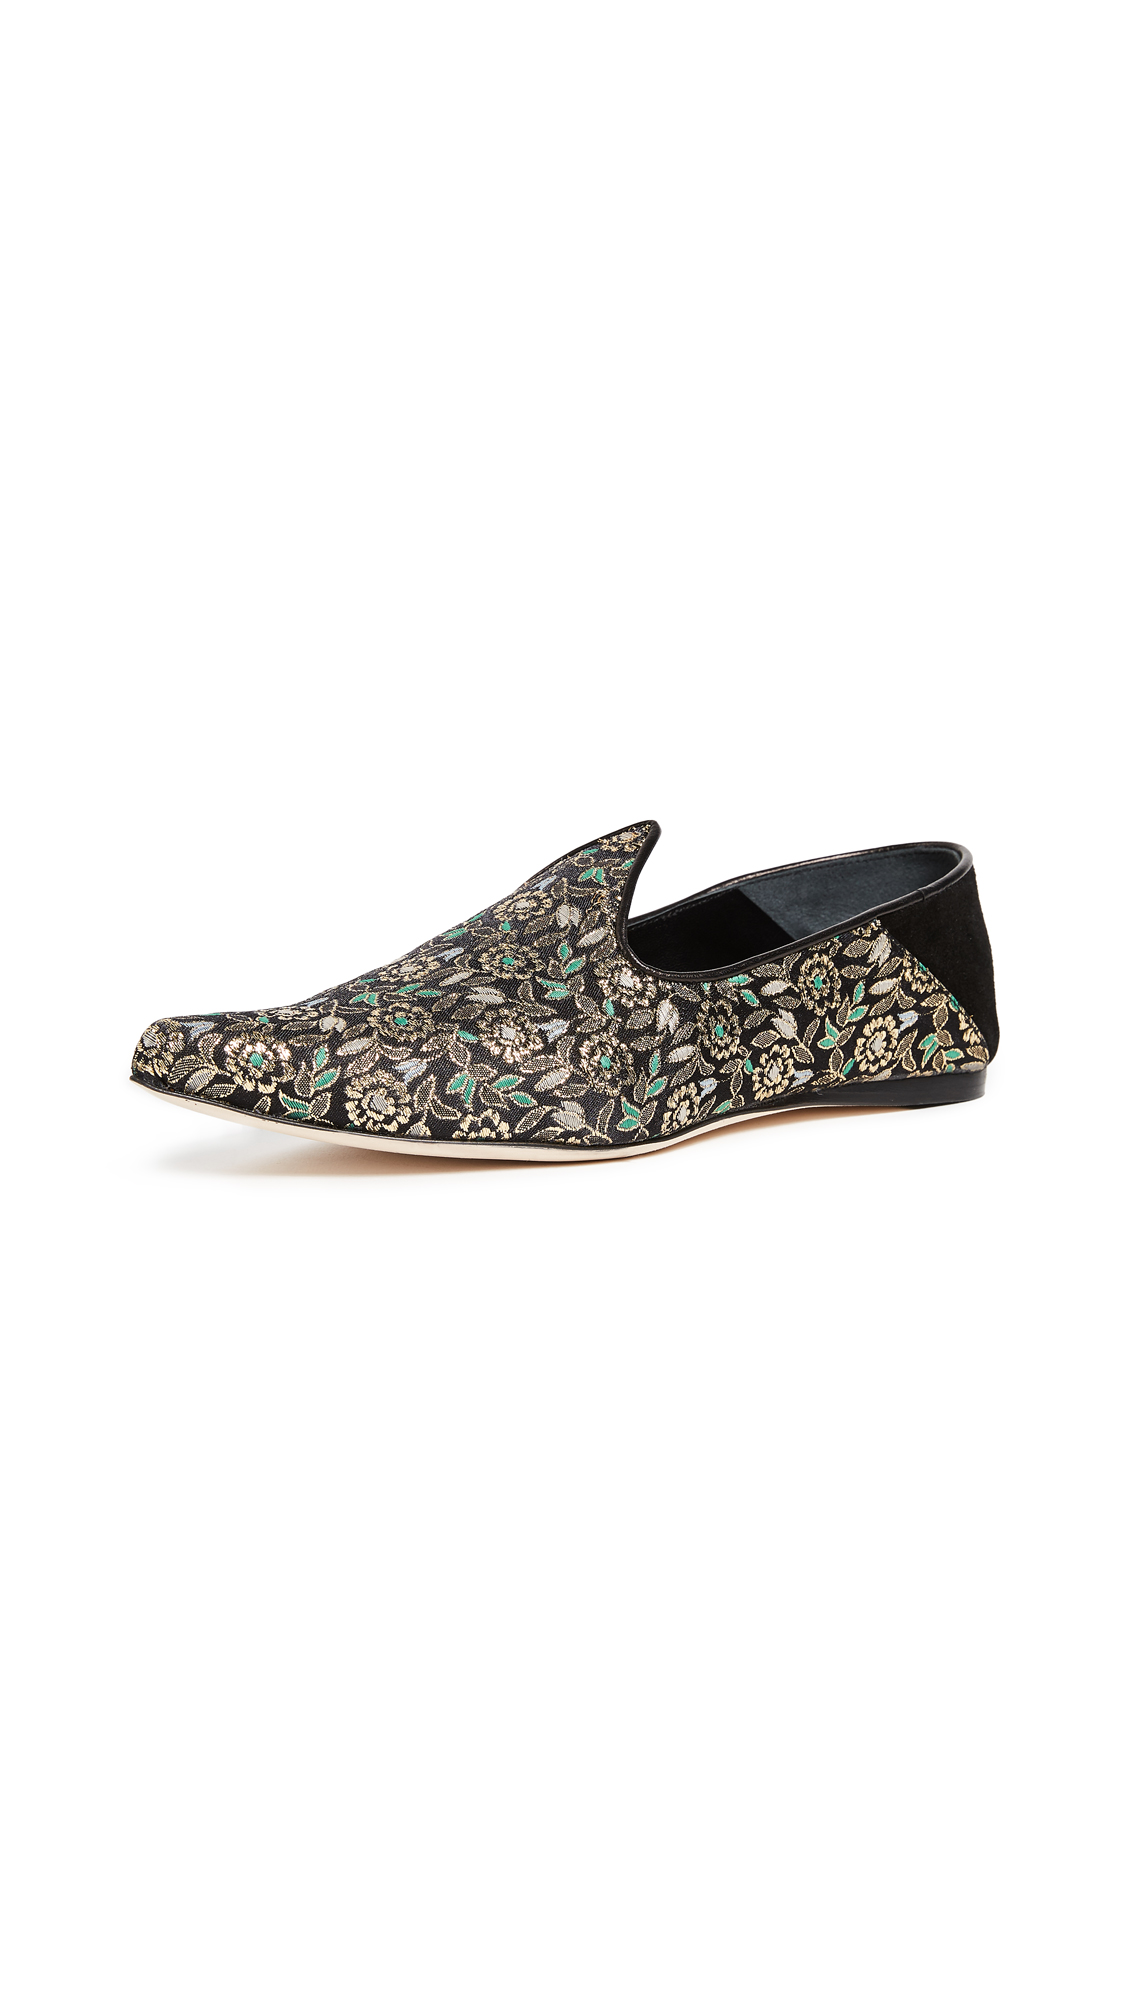 Trademark Lewitt Brocade Slippers - Black Multi